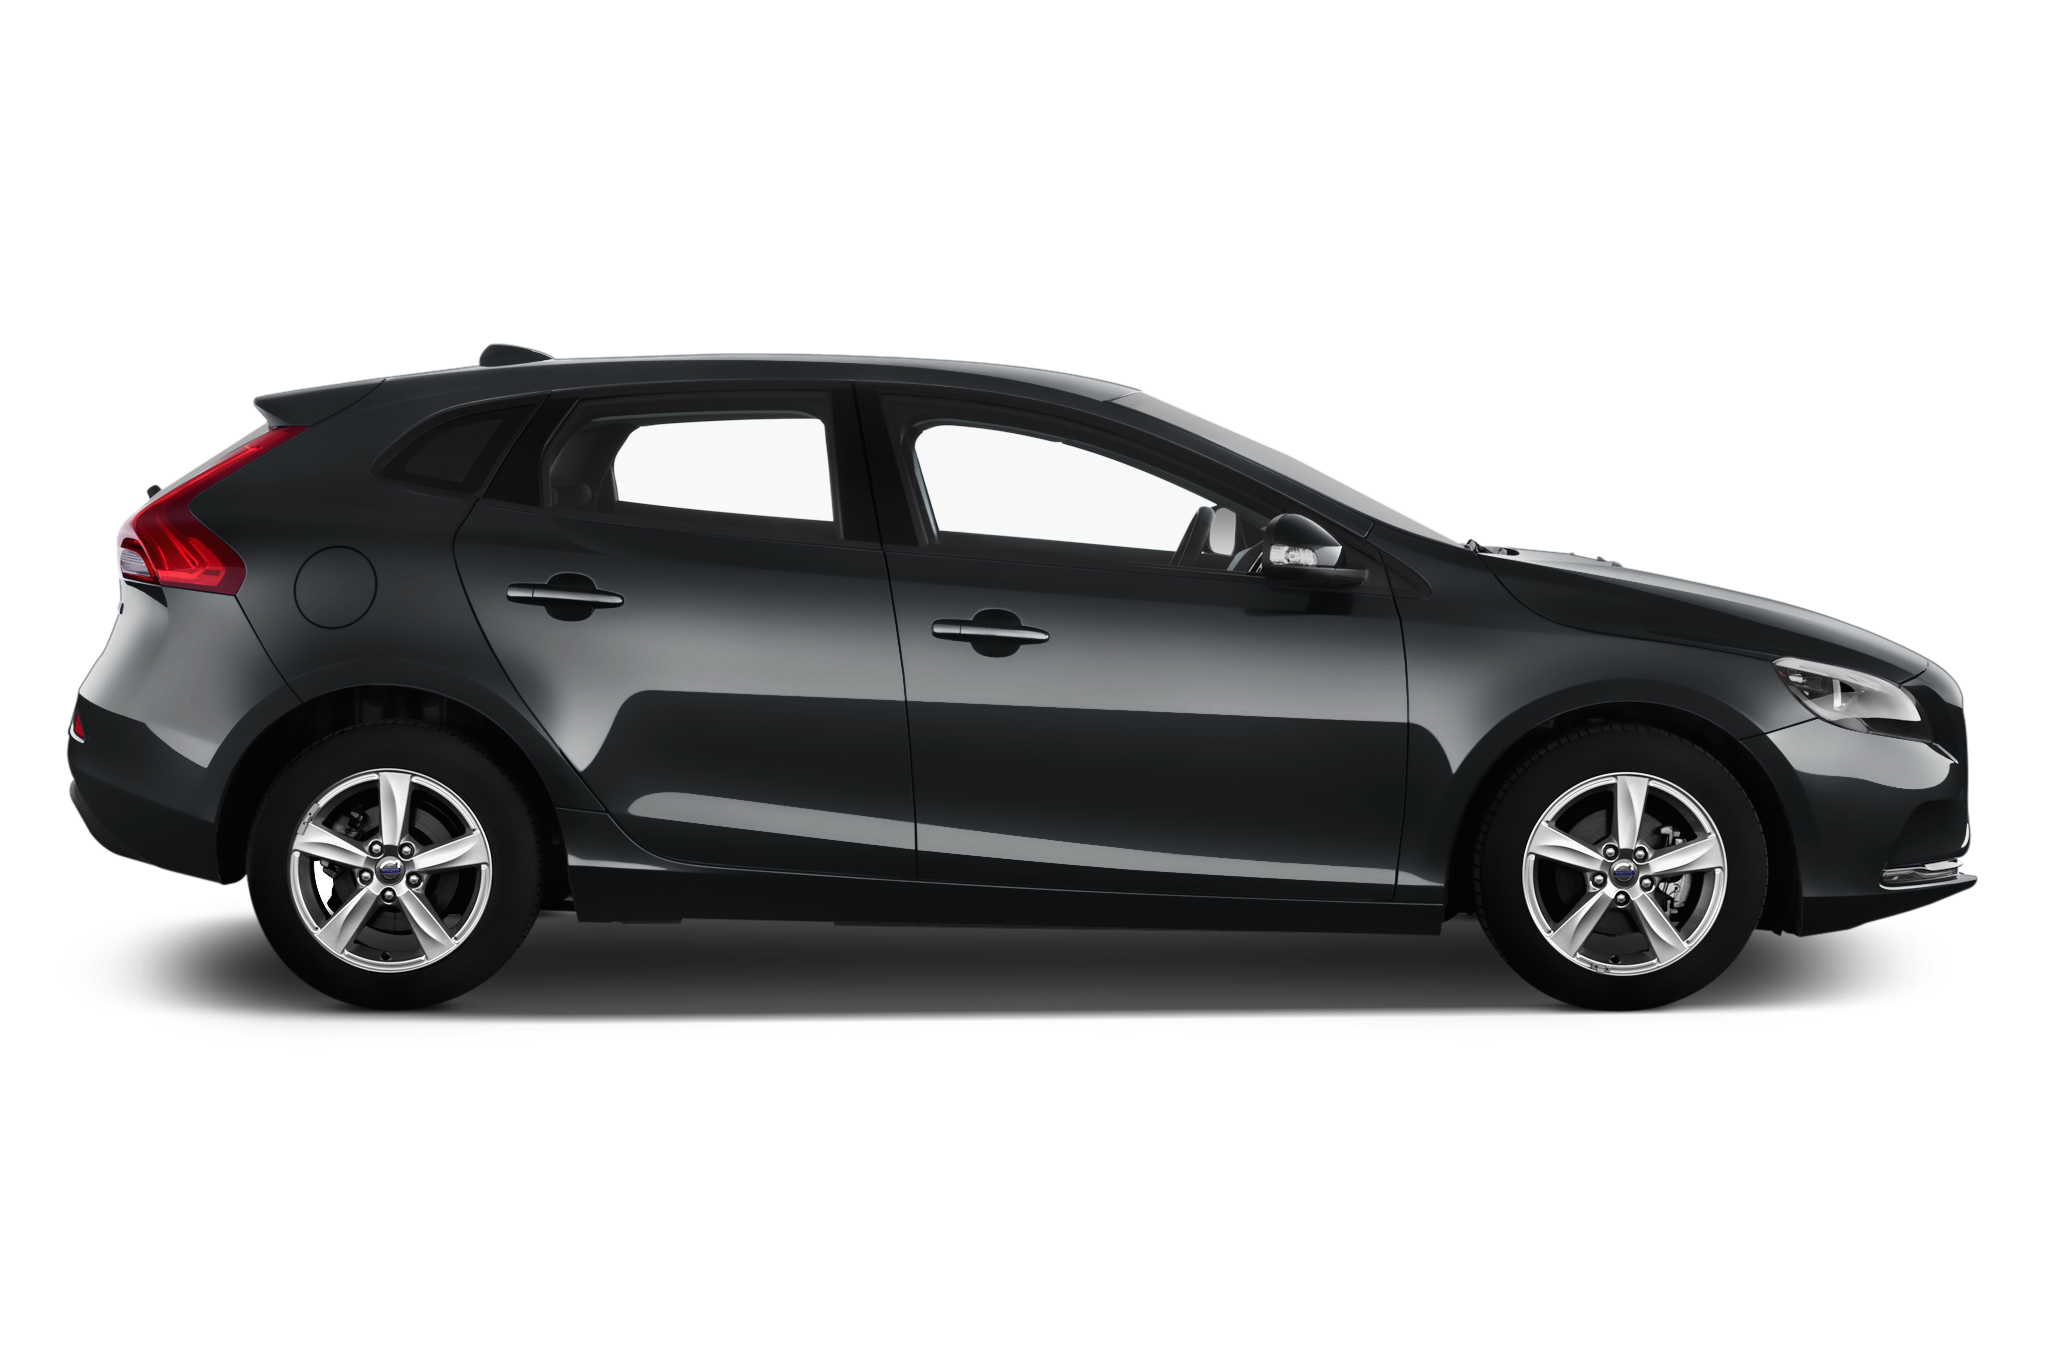 Volvo V40 company car side view